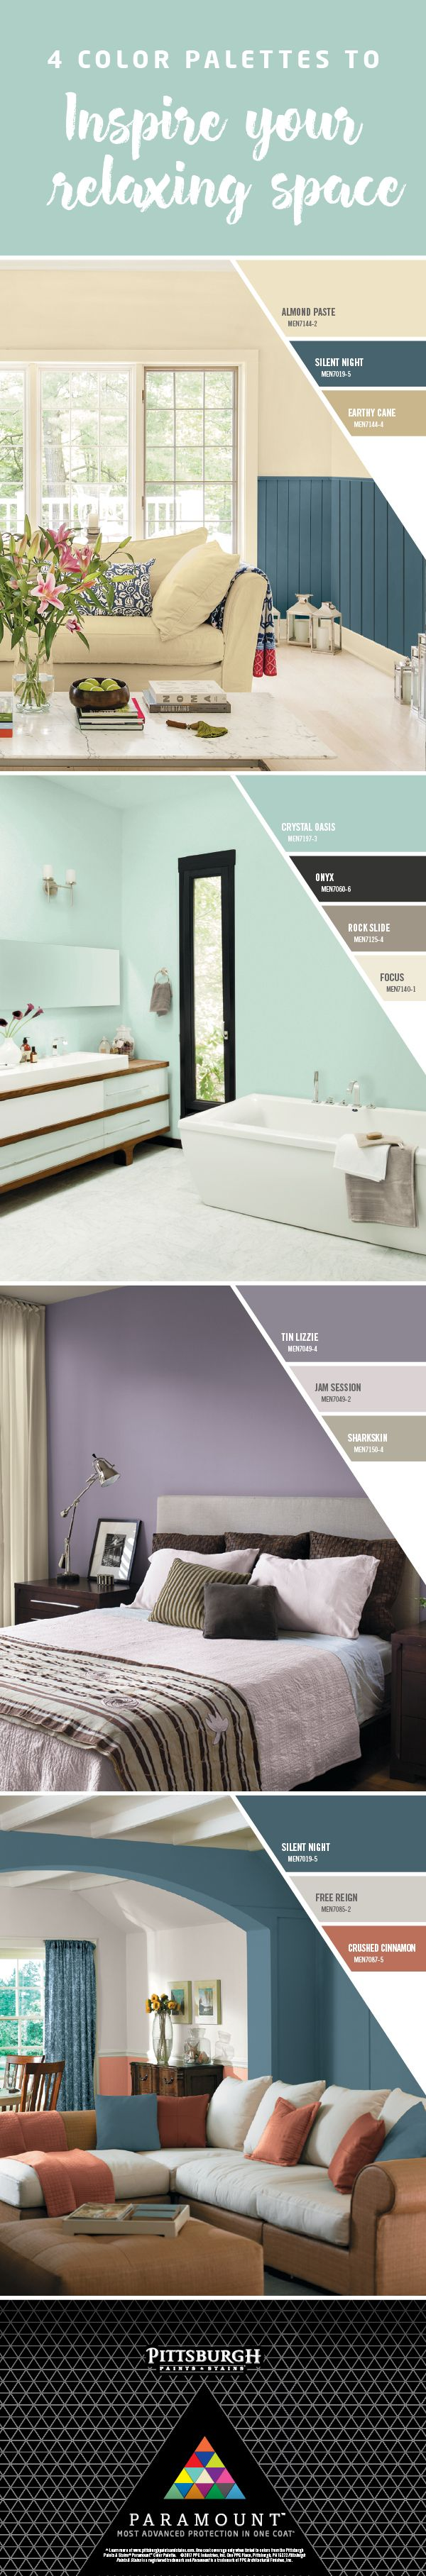 Color Palettes to Create Relaxing Spaces |The Relax Collection is designed to help you unwind, thanks to expertly selected colors that work together to create casual and cozy spaces. Use these paint colors in spaces where you go to unwind and take the edge off the day. These spaces should radiate warmth, ease and comfort. Click to explore these paint colors by Pittsburgh Paints & Stains Paramount™, exclusively at Menards®!